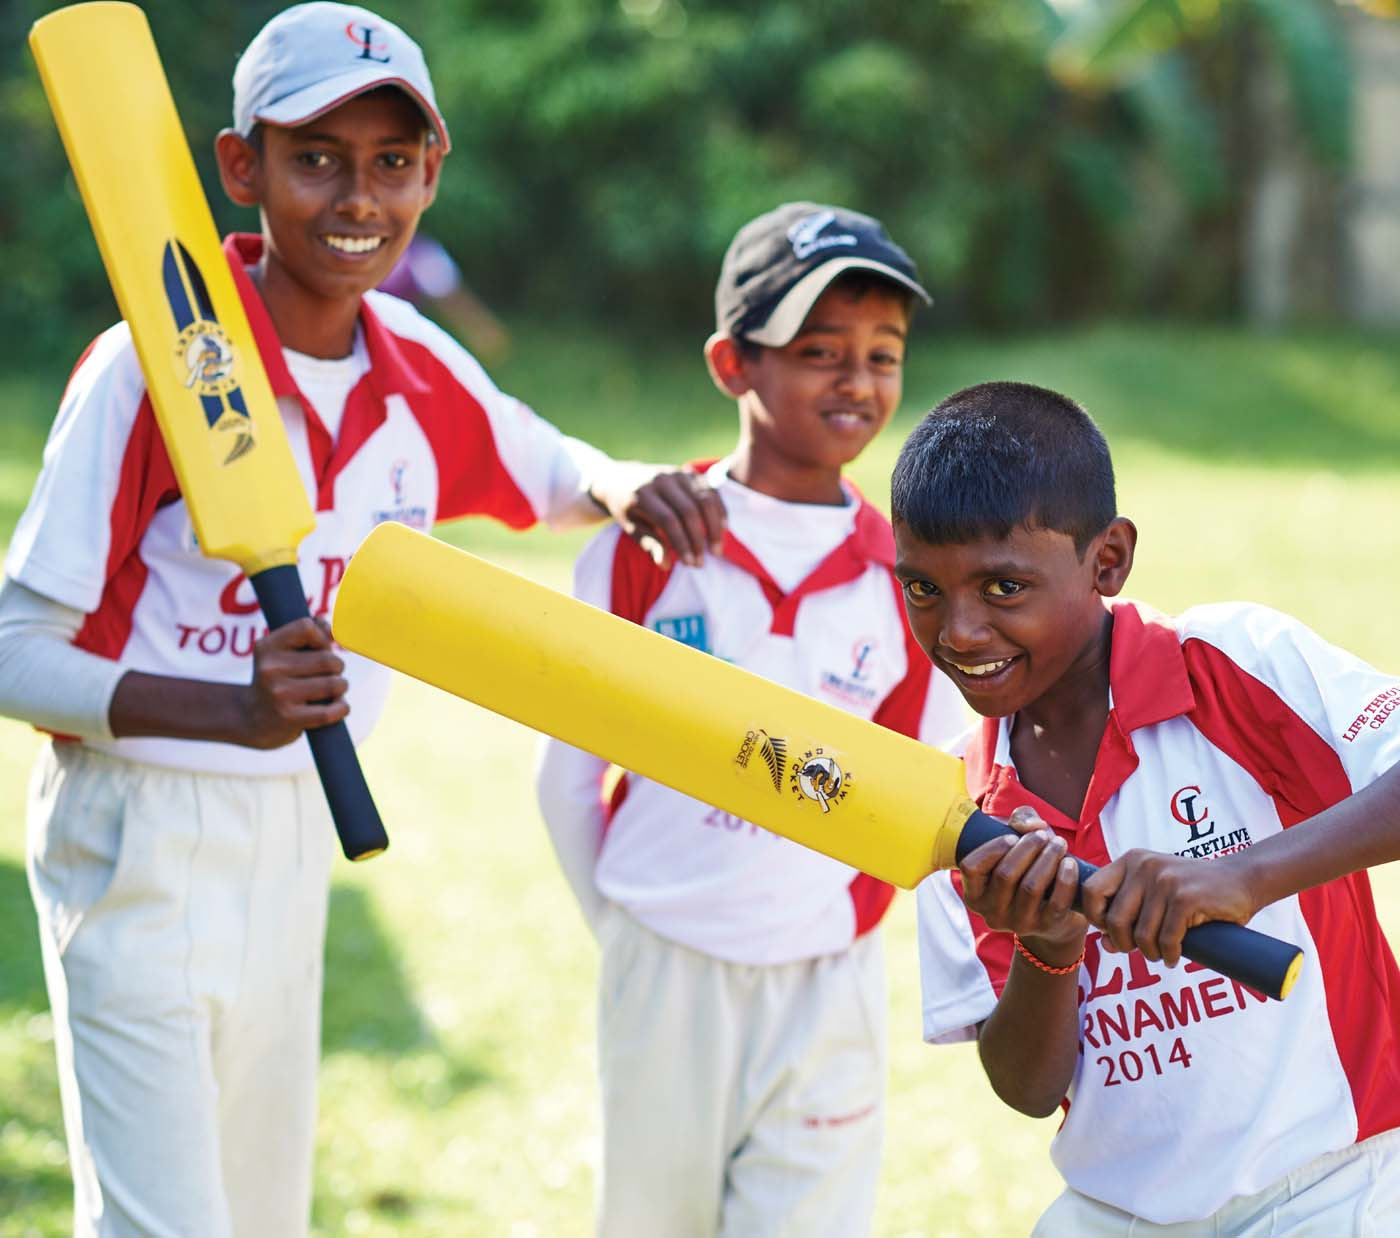 All children who are fans of cricket dream of becoming professional players one day. Dilmah strives to make these dreams a reality, giving children a chance at becoming stars of the game, by offering them proper training, facilities and encouragement.